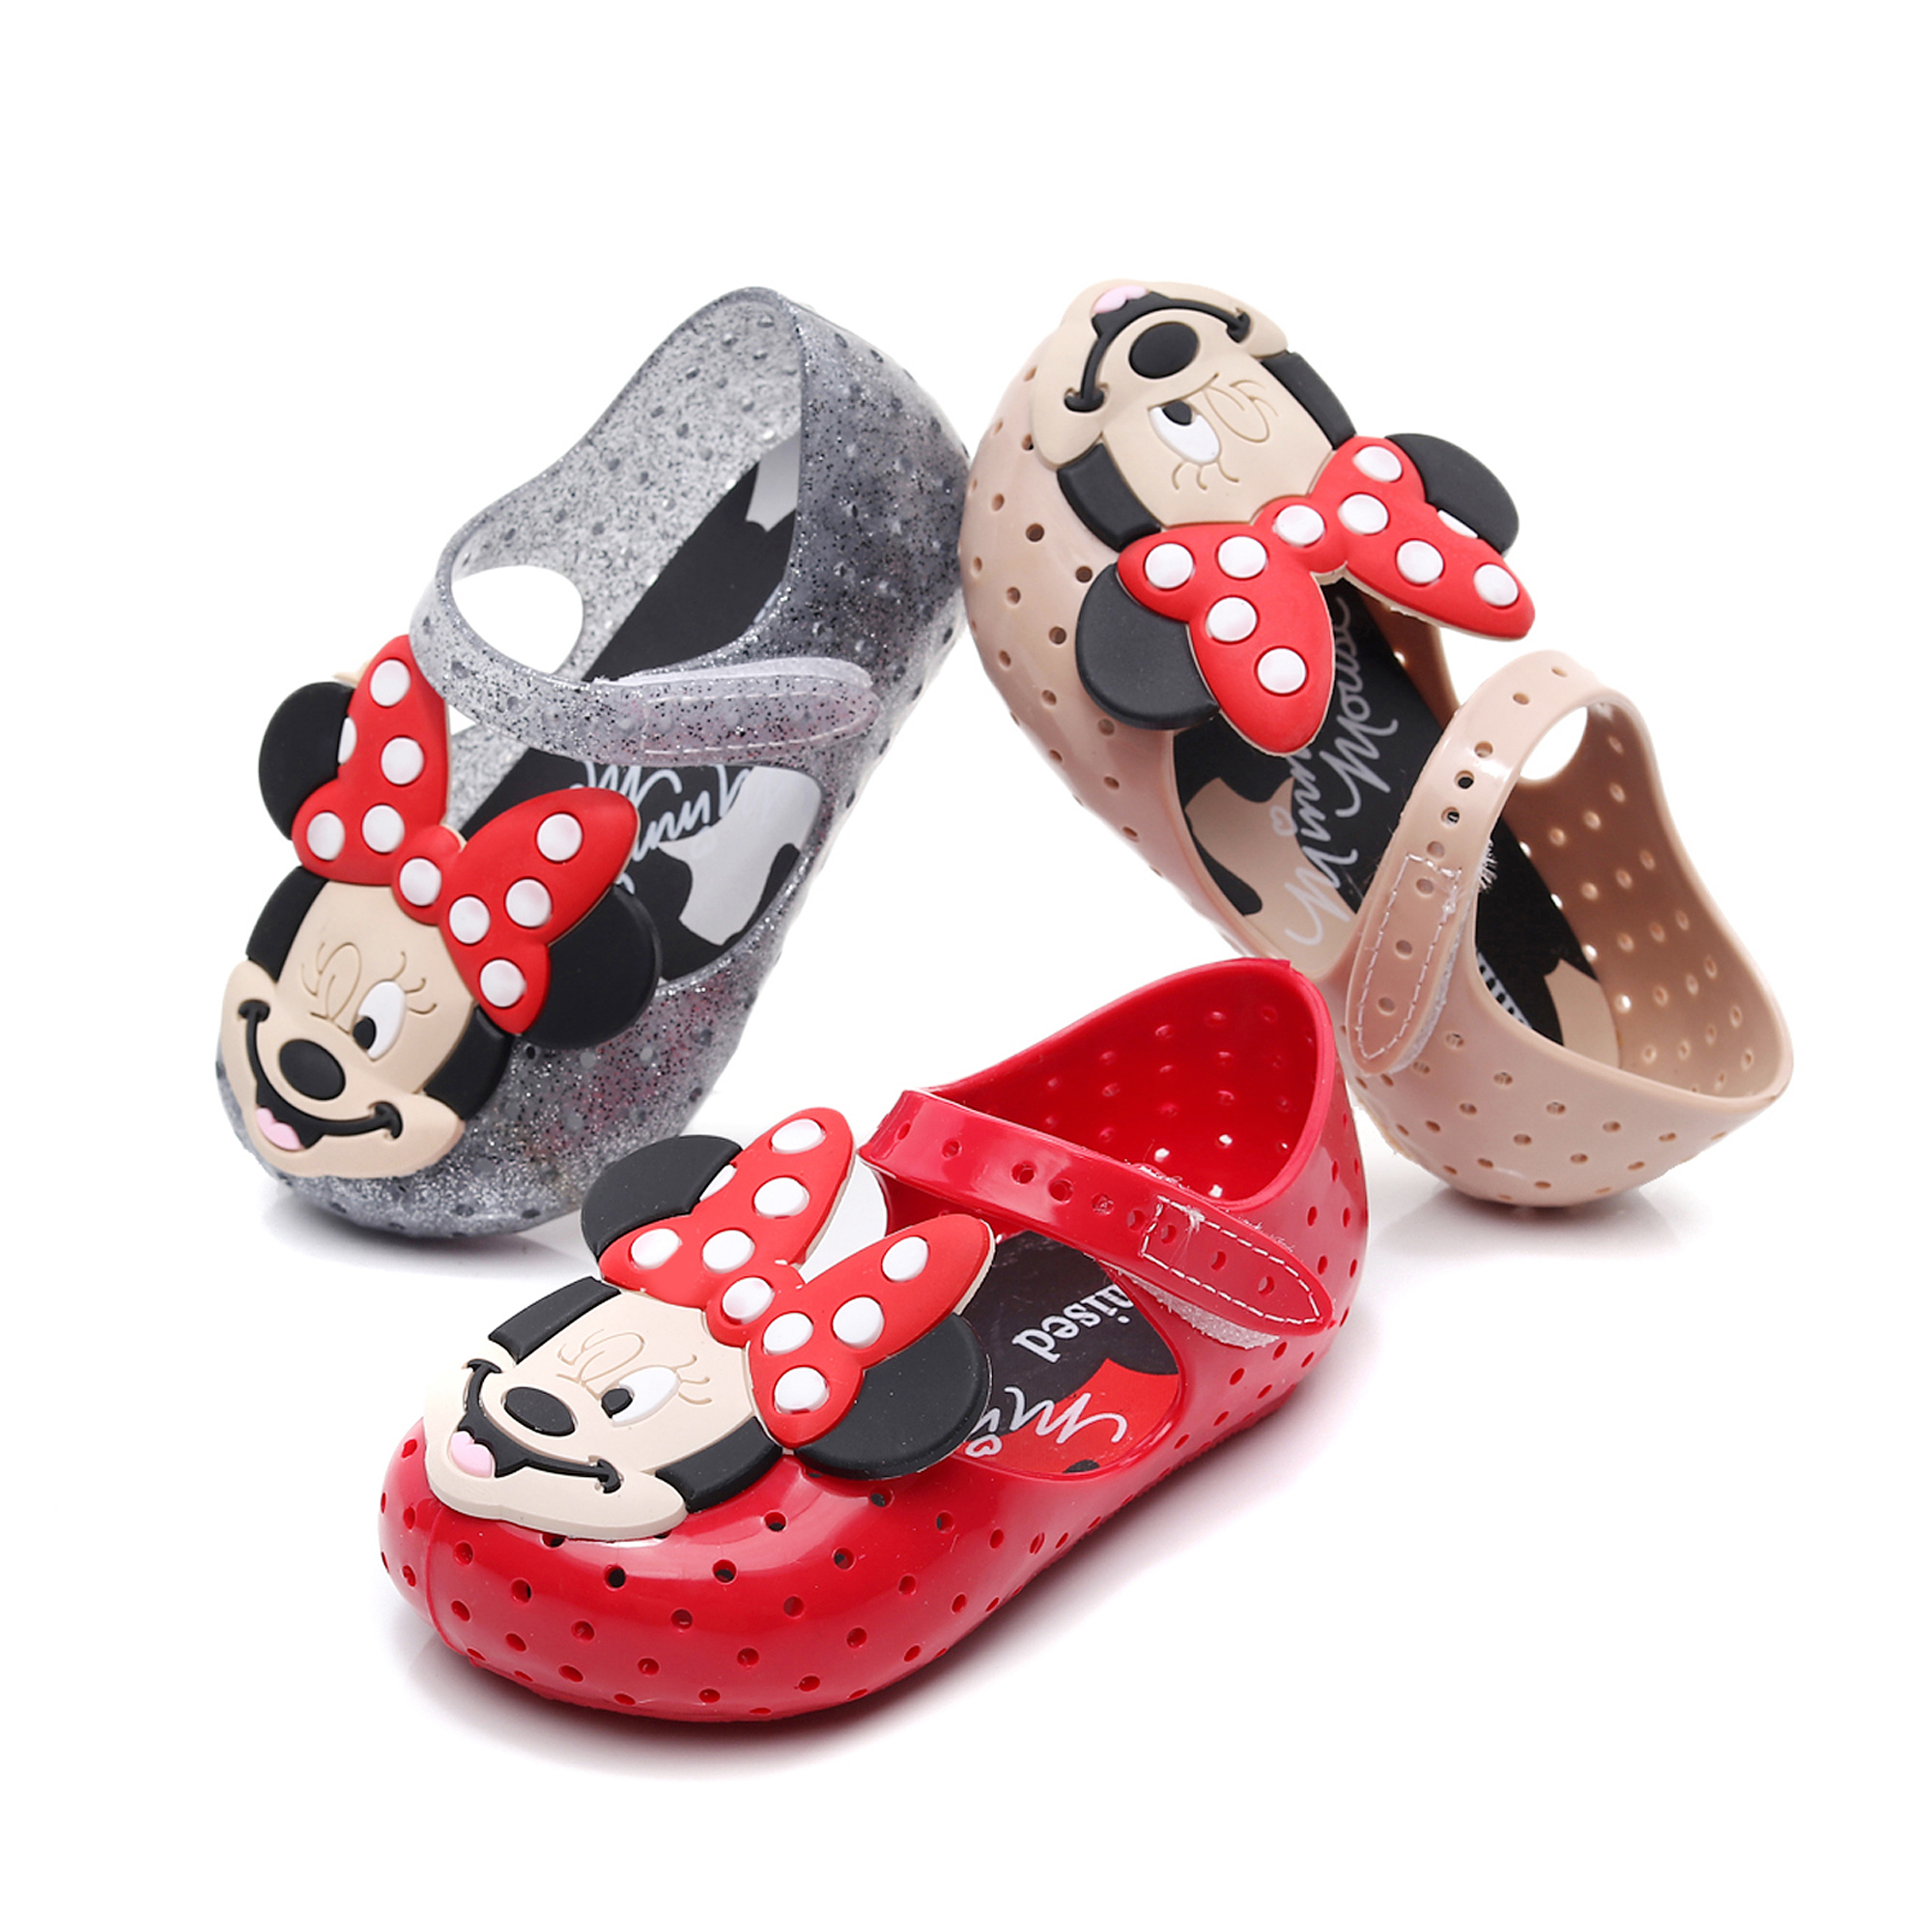 Mini Sed 2020 New Girls Cute Mickey Summer Sandals Kids Princess Fashion Hole Jelly Shoes Baby Beach Wear Shoes Candy Shoe MS004